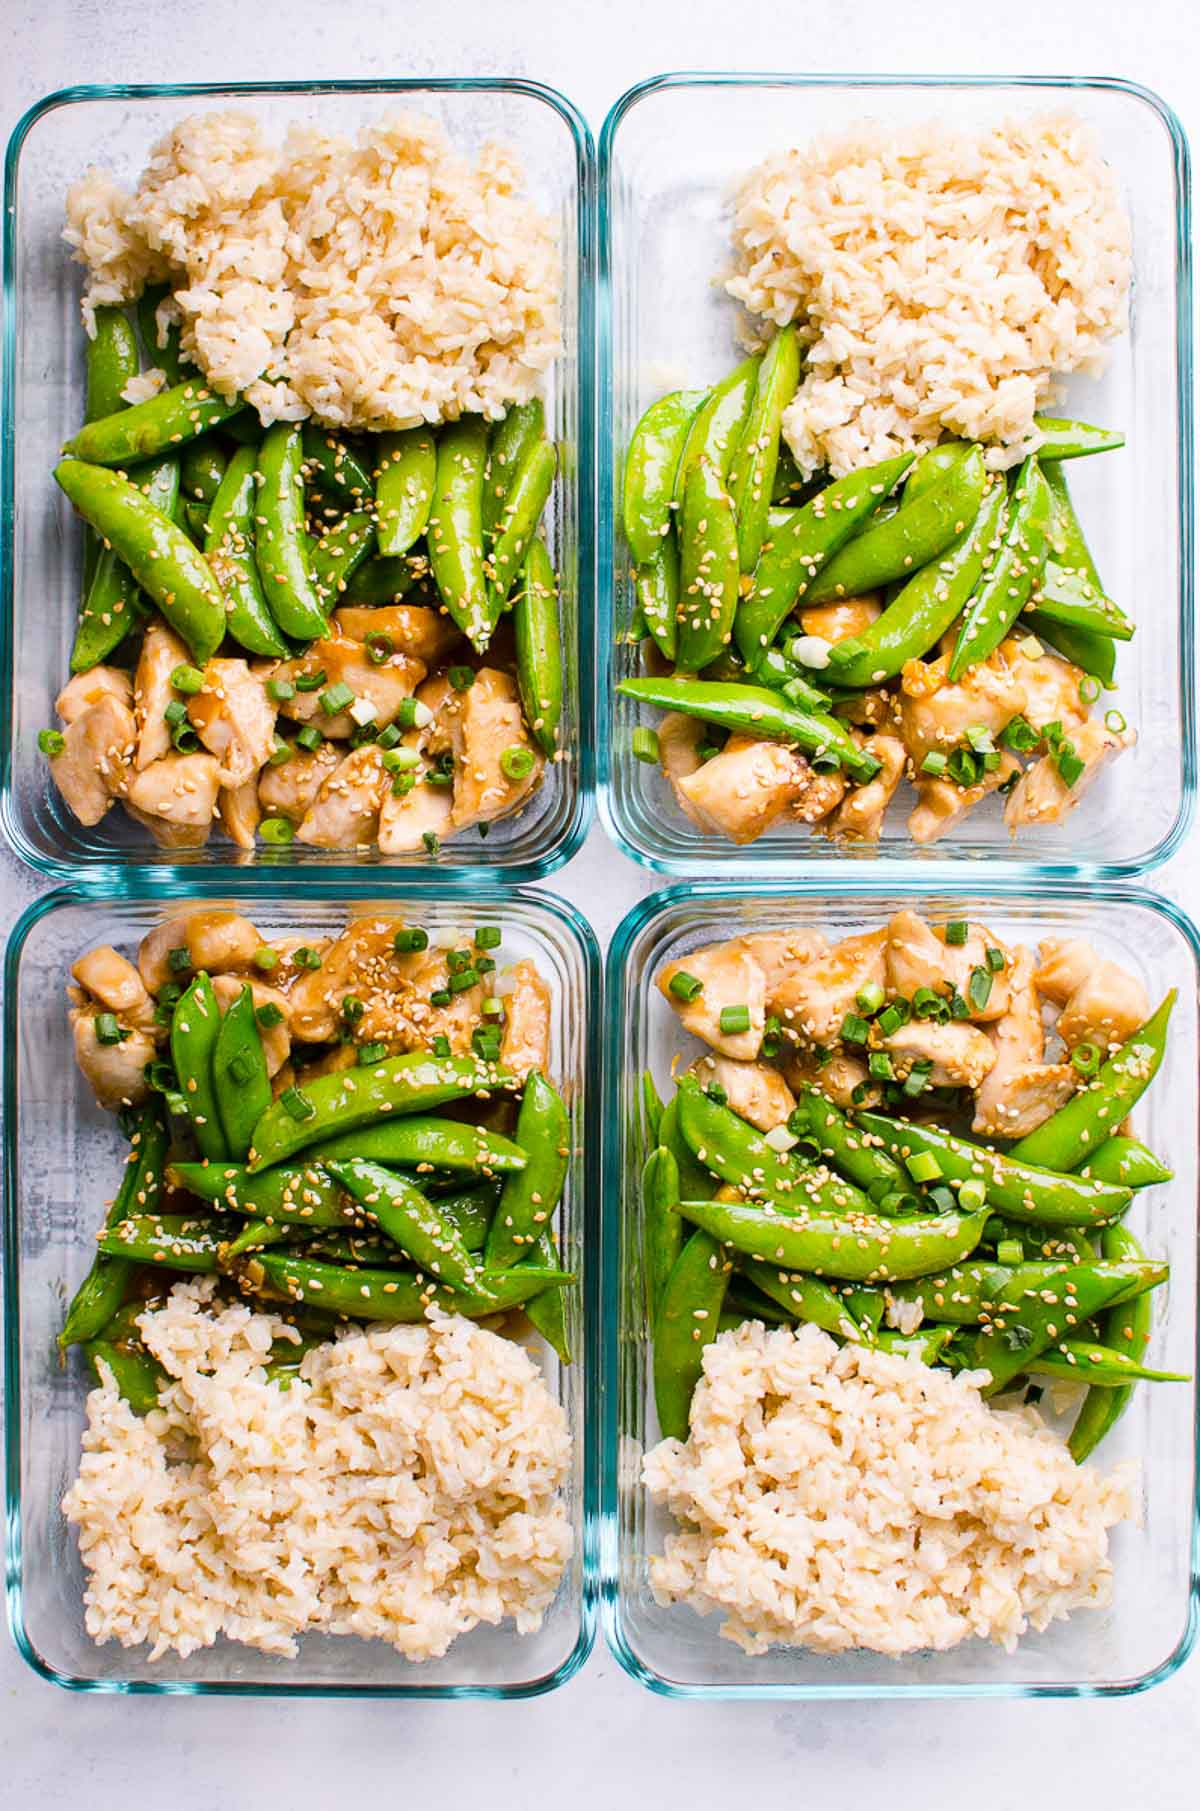 Healthy Teriyaki Chicken Meal Prep with chicken, snap peas and brown rice in 4 glass containers.